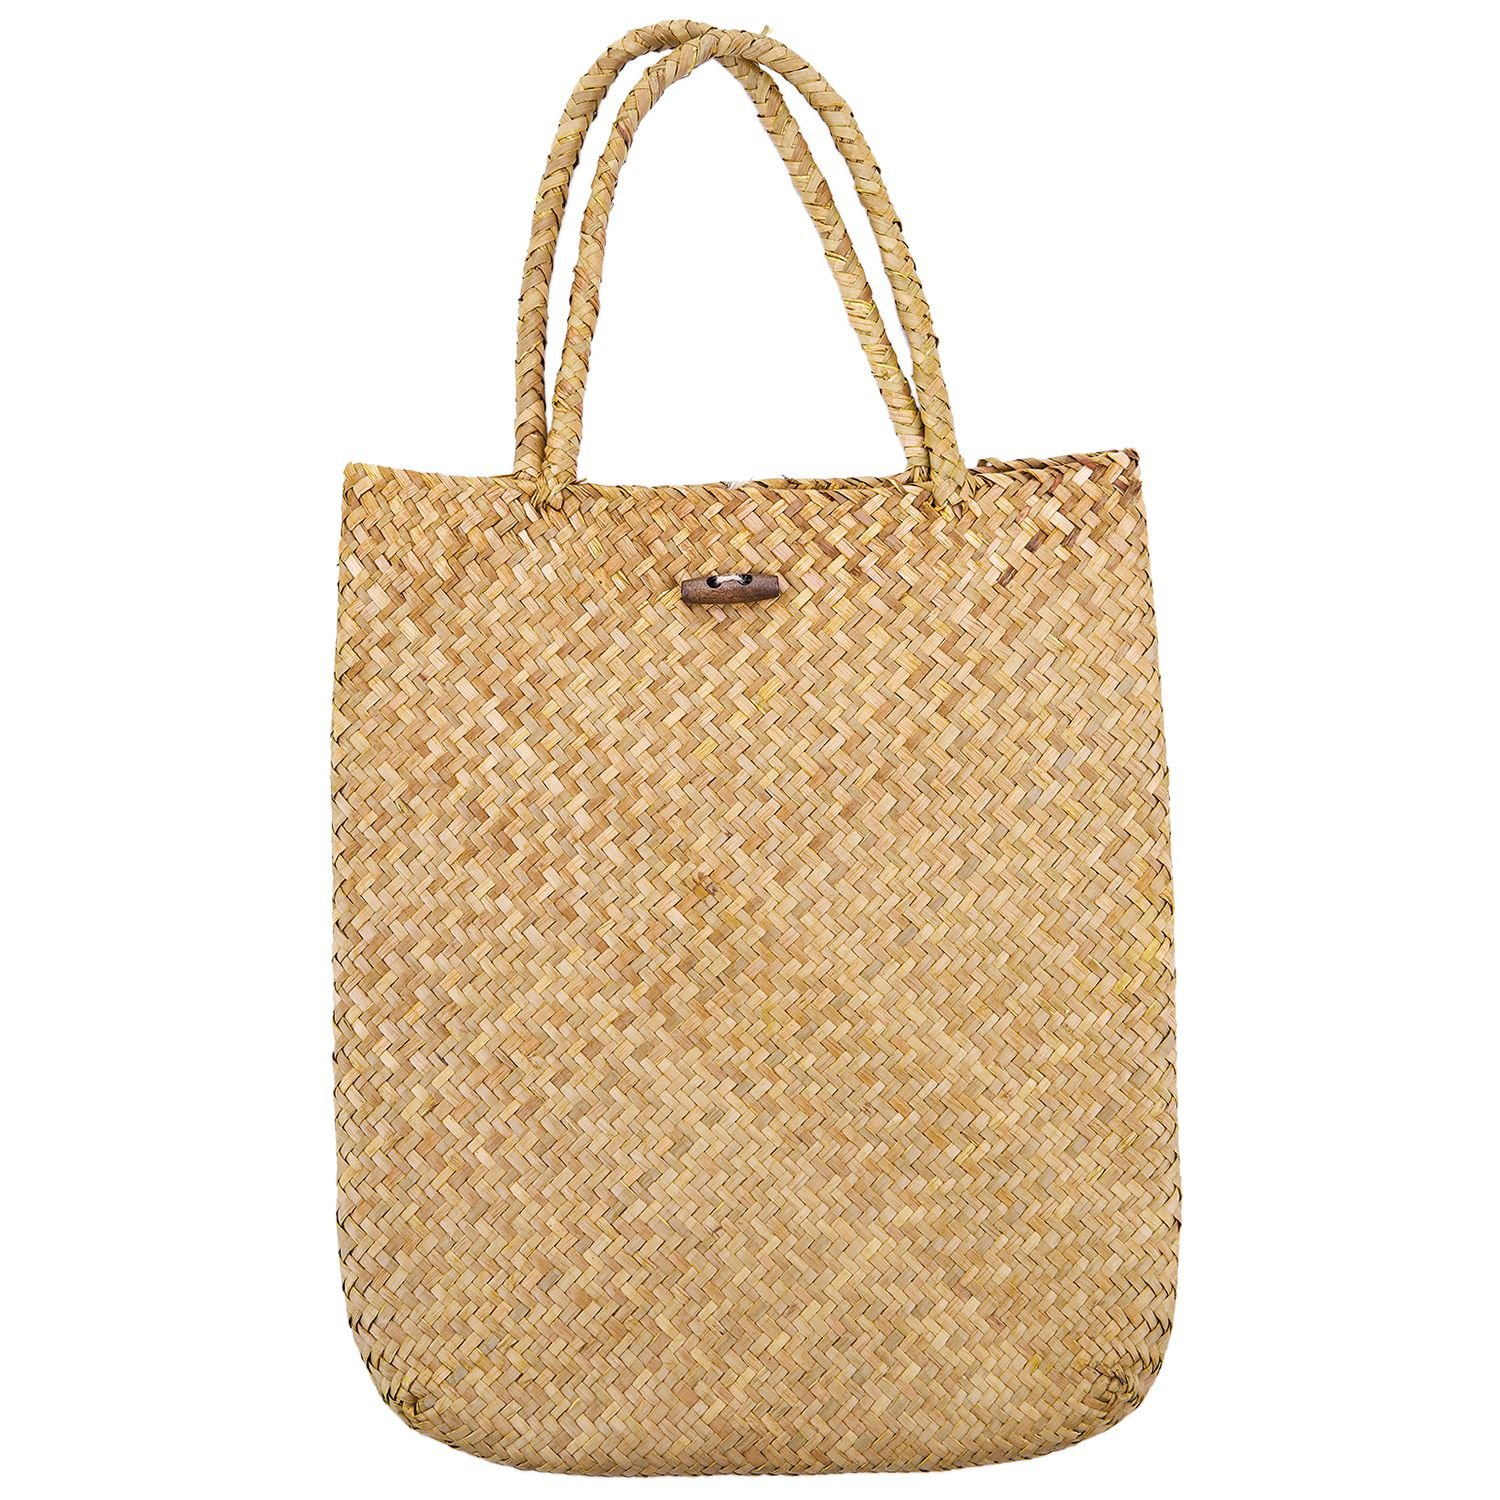 f13dac72b5b4 SODIAL Summer Beach Bag Rattan grass Weaved Casual Tote Shopping ...